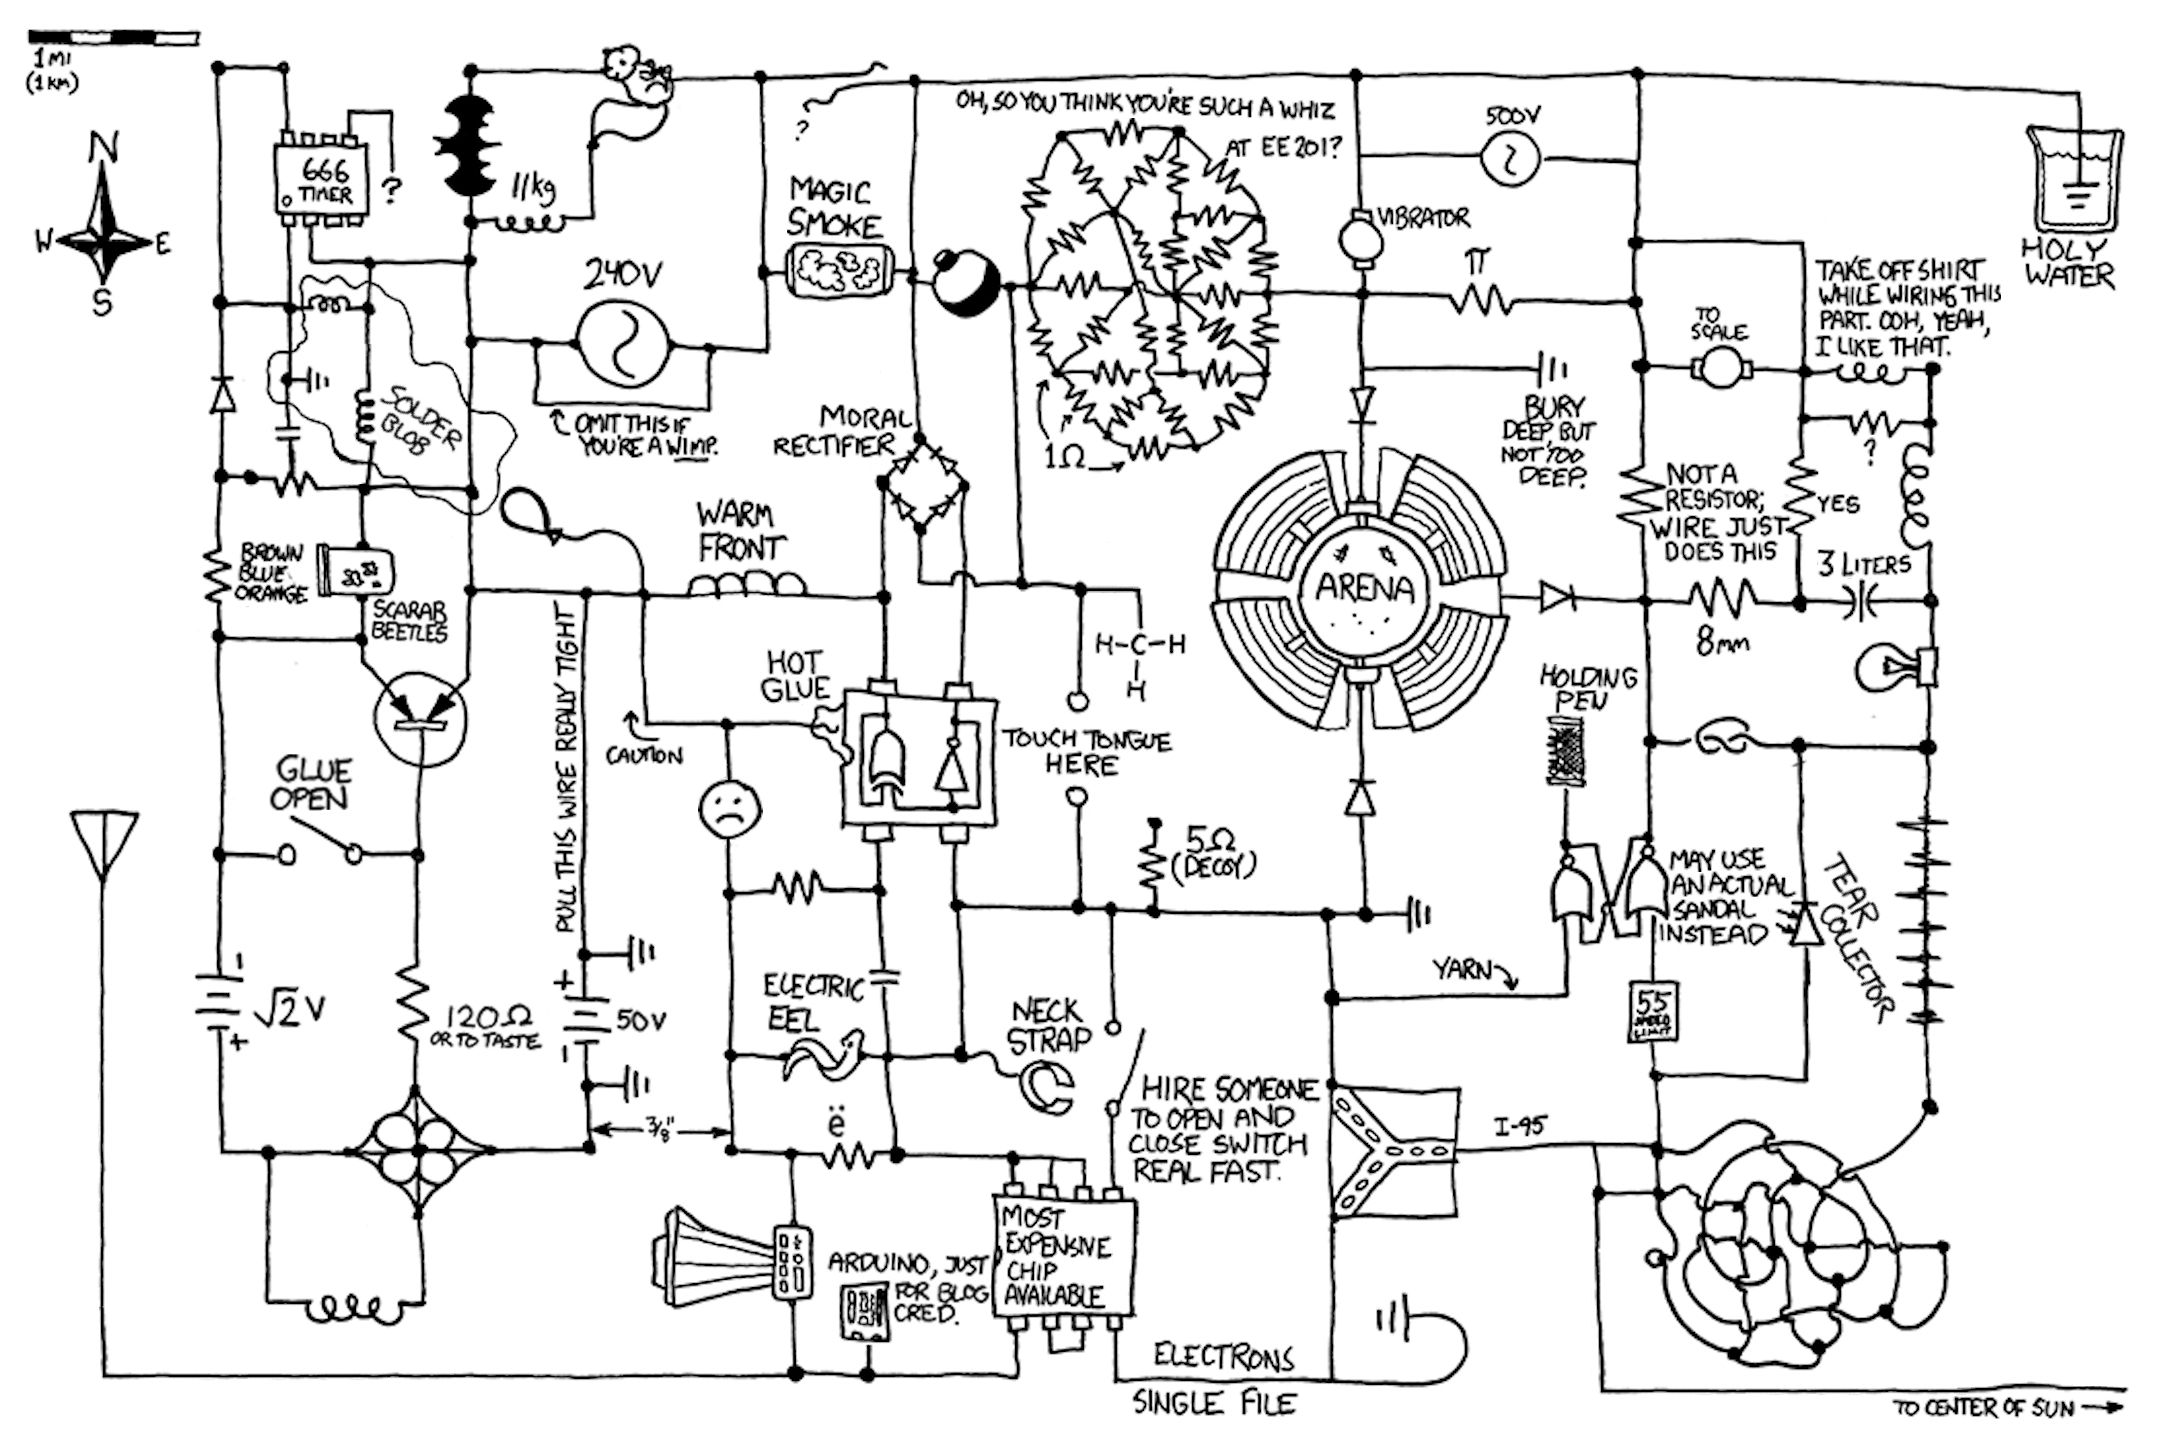 medium resolution of i rotated all of the text in circuit diagram xkcd 730 so it can be wiring diagram xjcd online